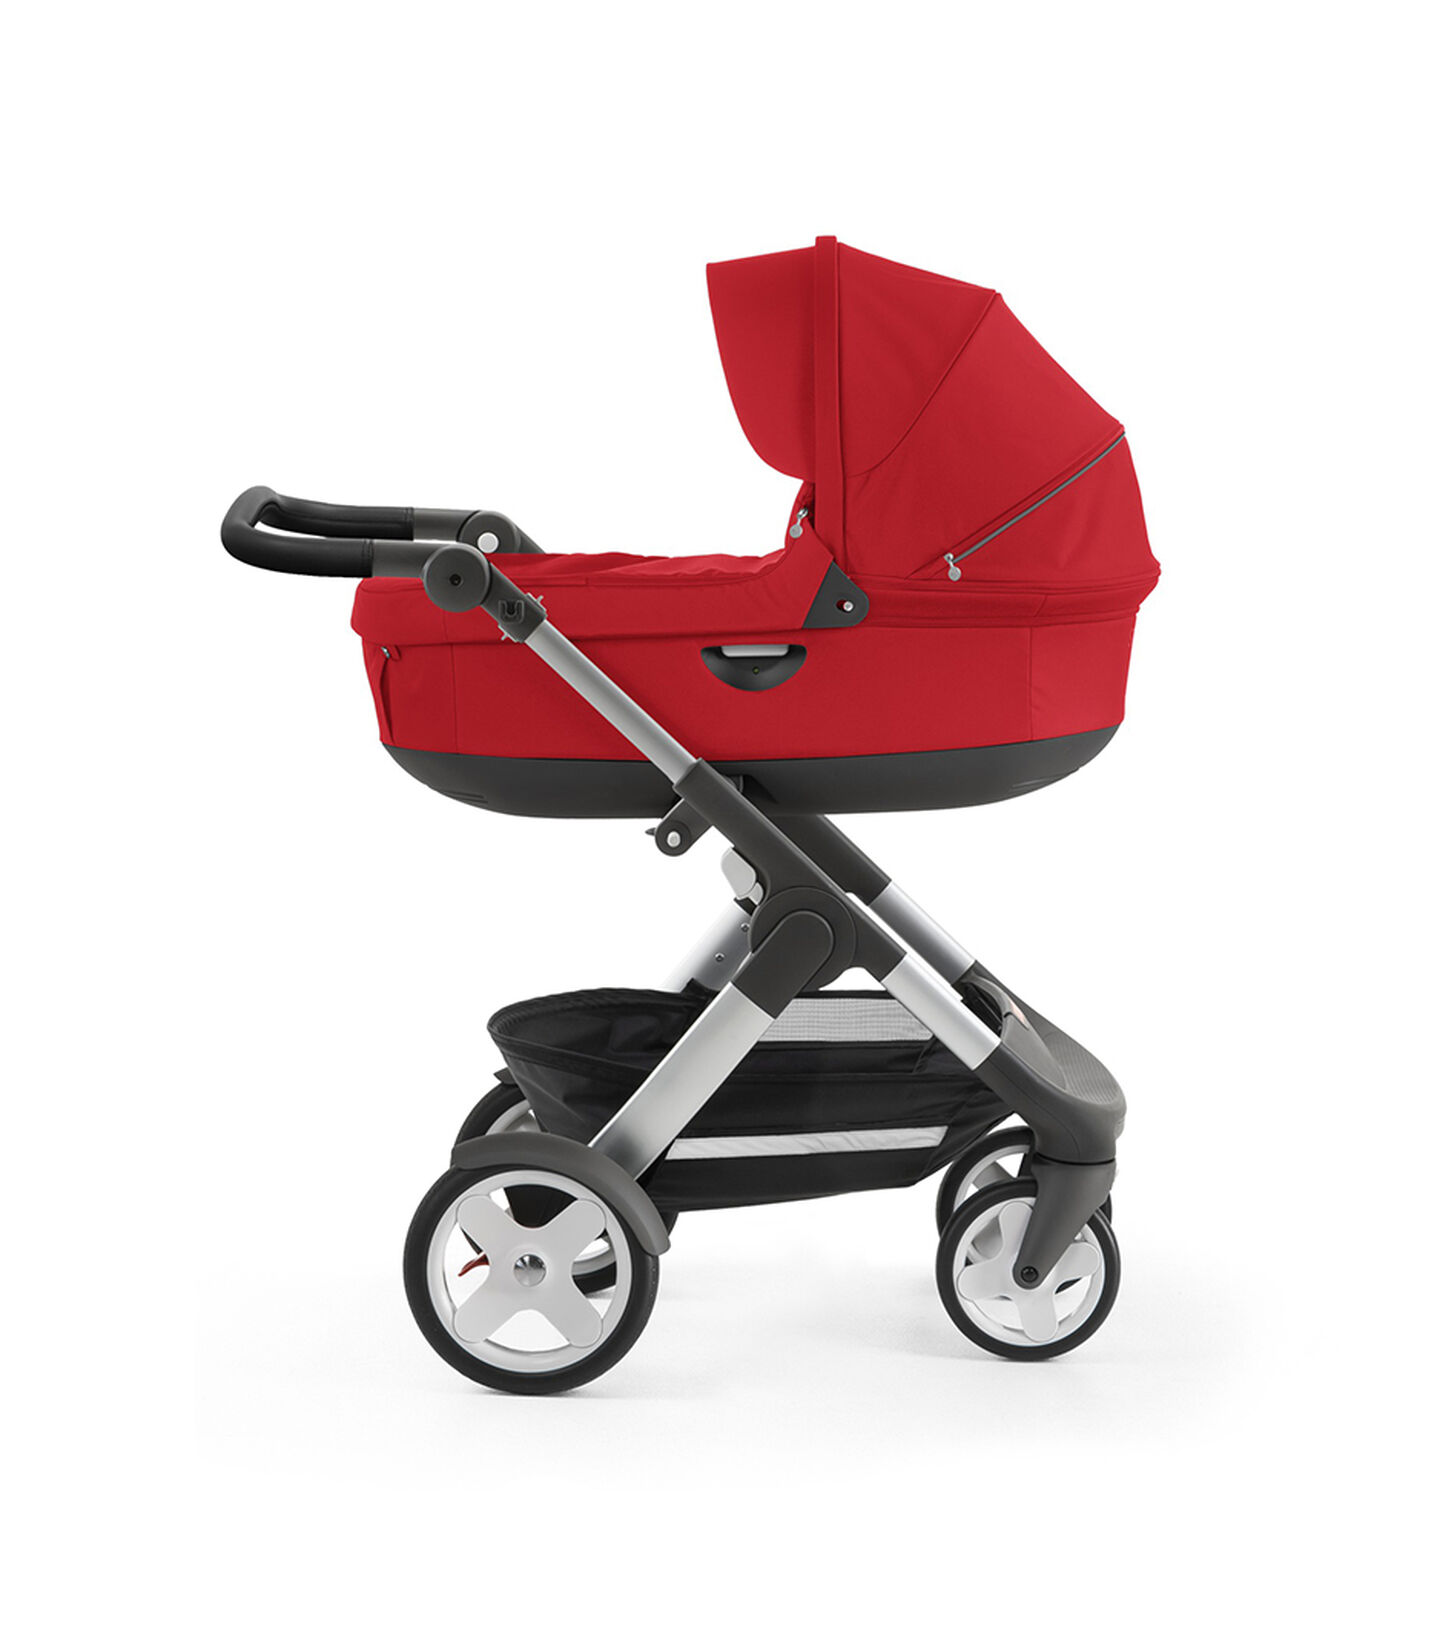 Stokke® Trailz™ with silver chassis and Stokke® Stroller Carry Cot, Red. Classic Wheels. view 2